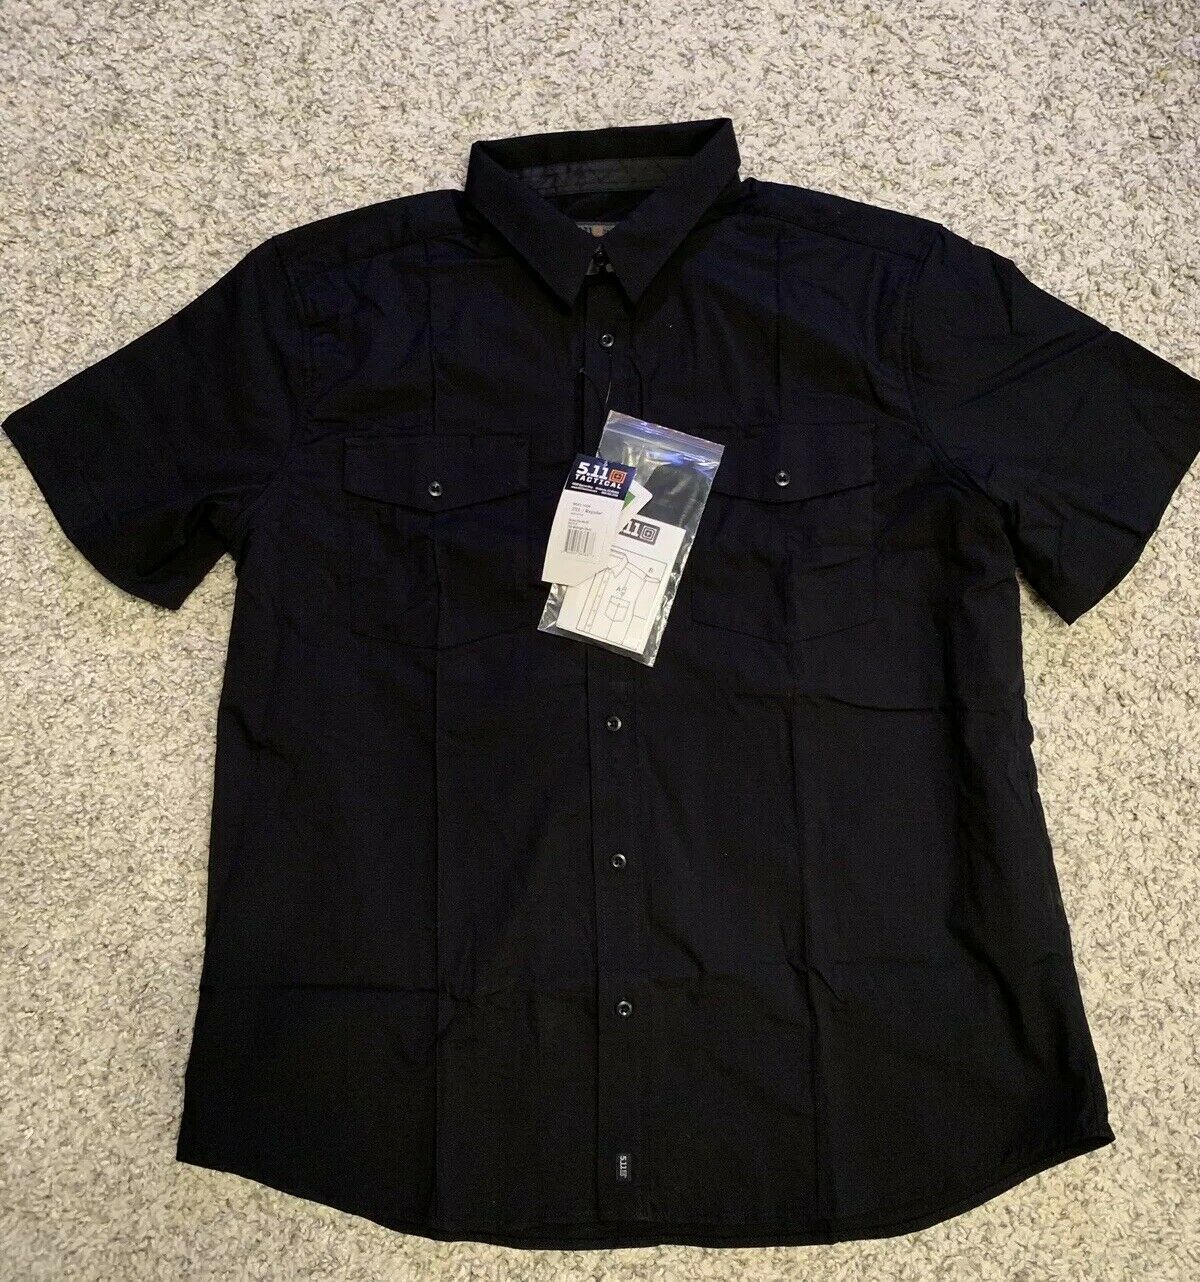 5.11 Tactical Mens Stryke Short Sleeve PDU -Class B Duty EMS Operator Police 3XL